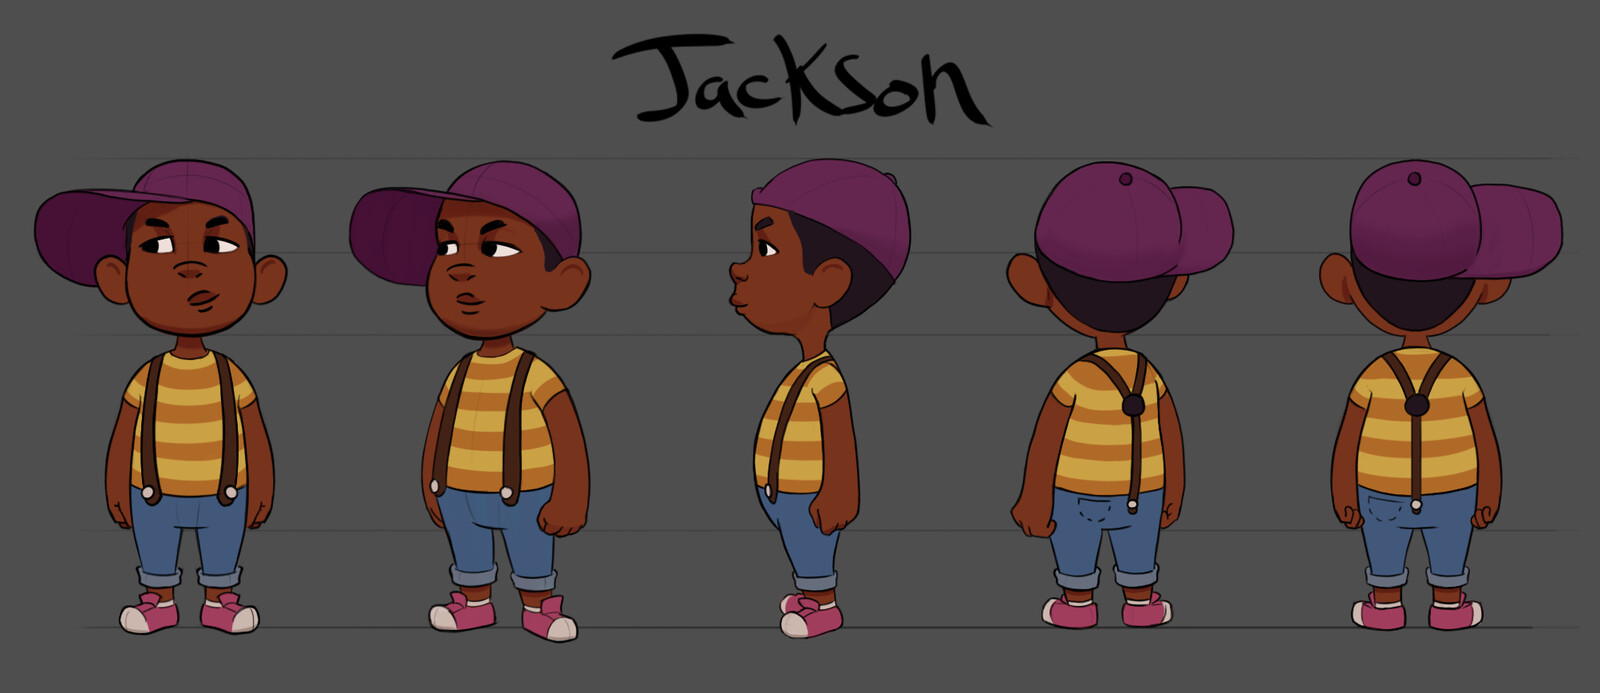 Jackson character turn around